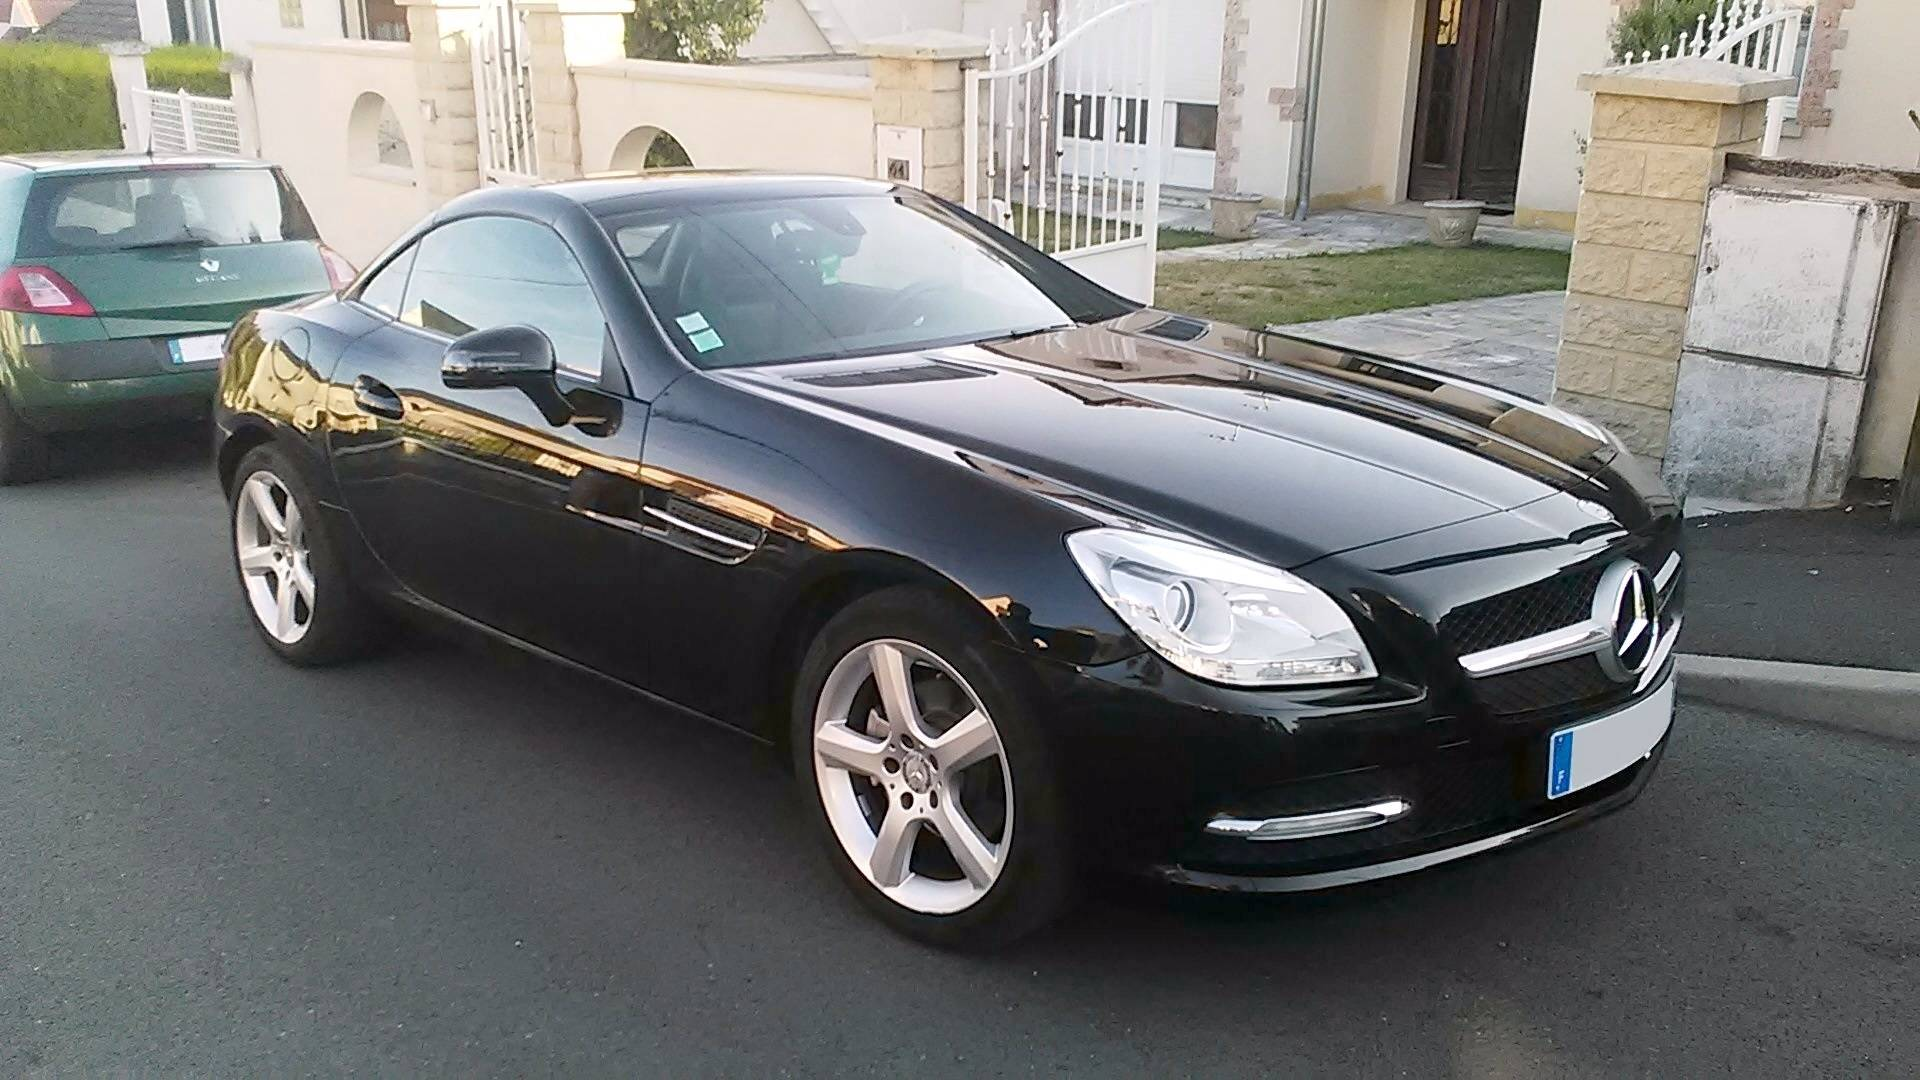 cote auto gratuite mercedes slk 200 k 2007 11 cv 10113064. Black Bedroom Furniture Sets. Home Design Ideas